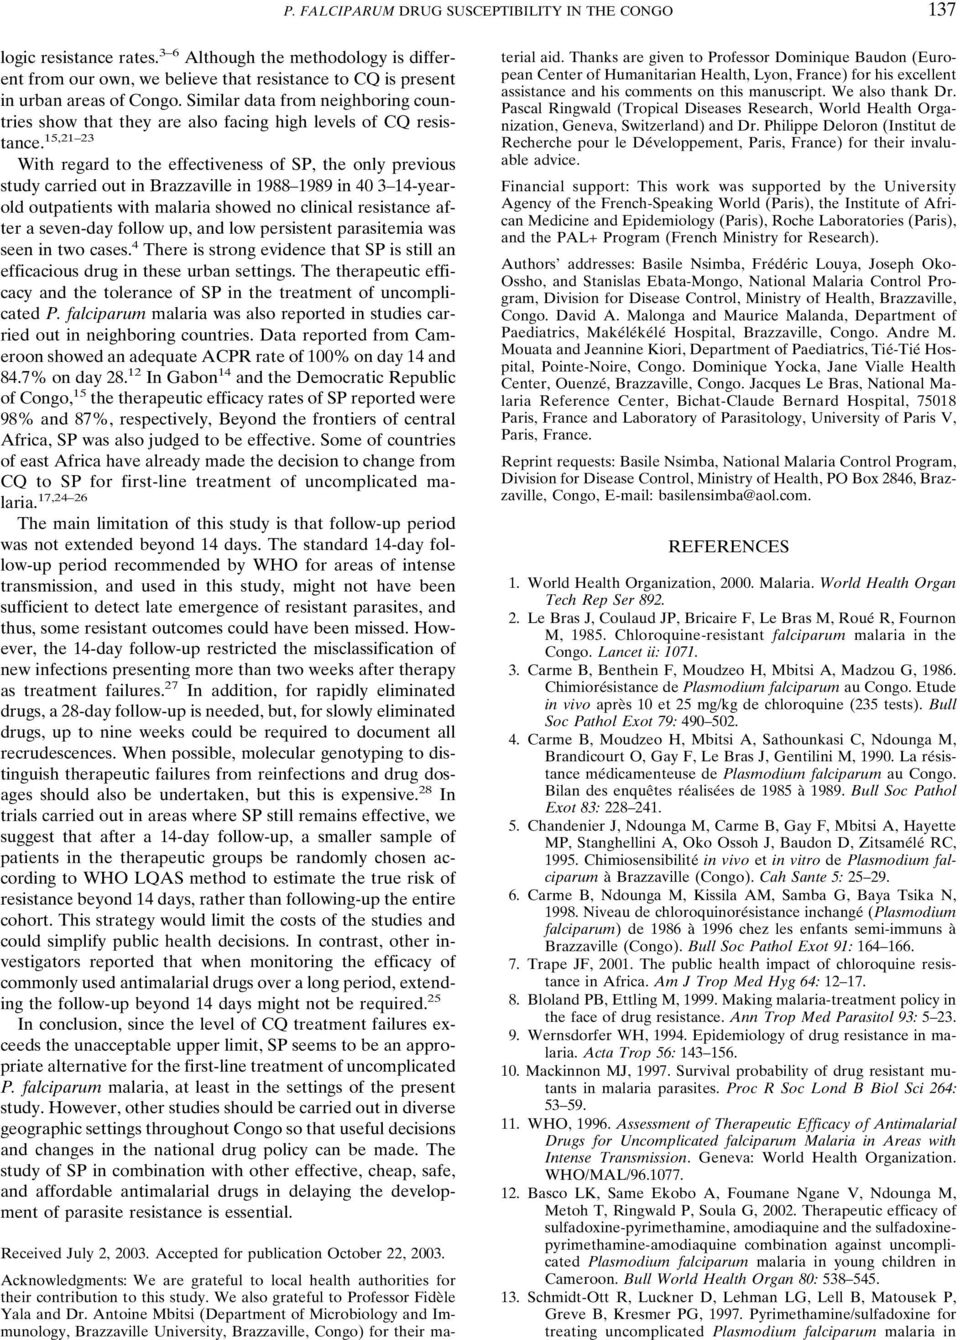 15,21 23 With regard to the effectiveness of, the only previous study carried out in Brazzaville in 1988 1989 in 40 3 14-yearold outpatients with malaria showed no clinical resistance after a